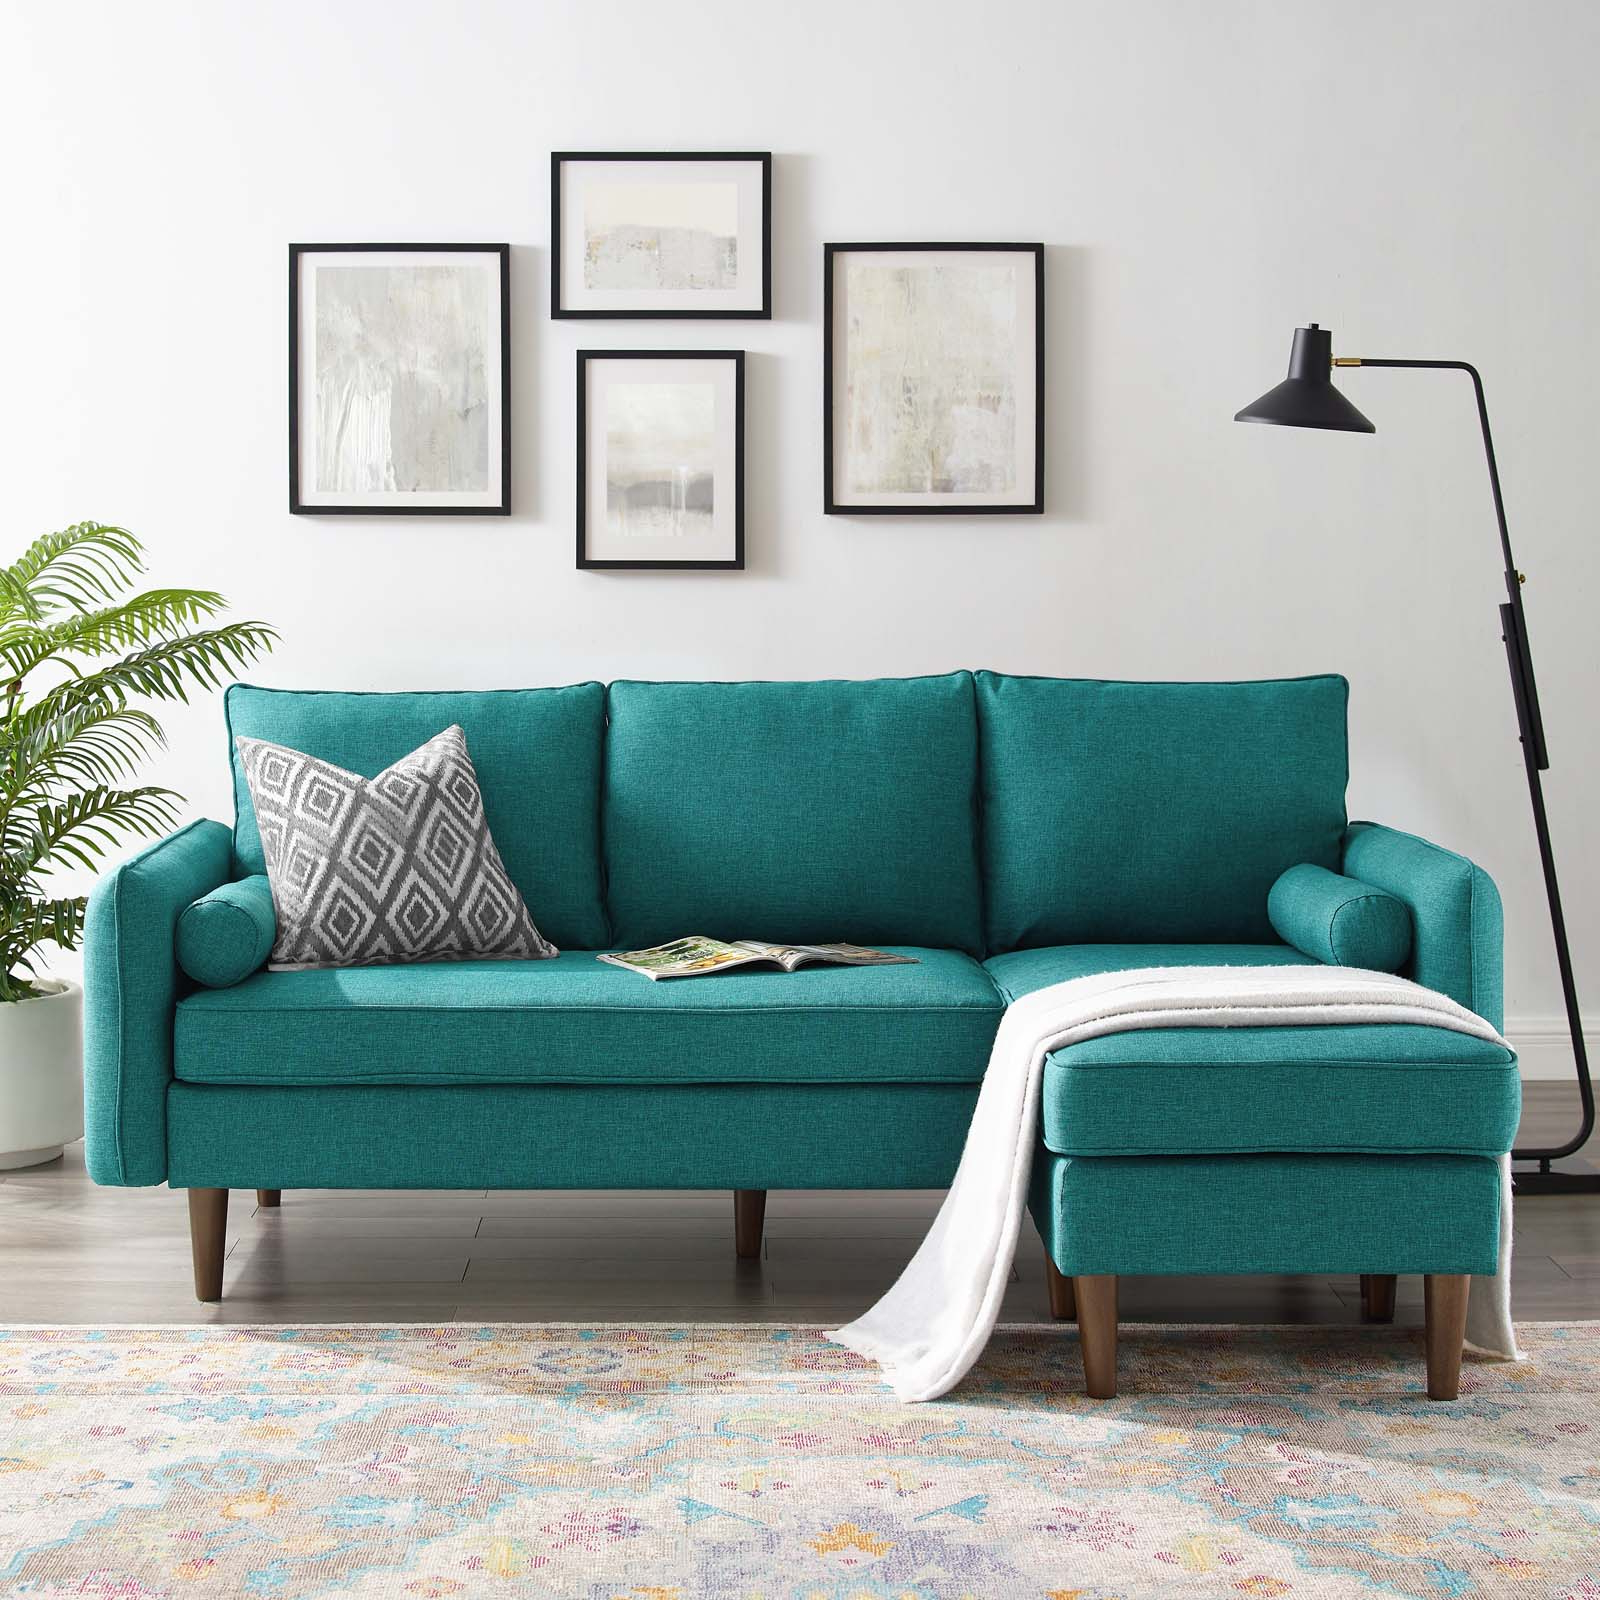 Popular Revive Upholstered Right Or Left Sectional Sofa Teal Within Hannah Right Sectional Sofas (View 13 of 25)